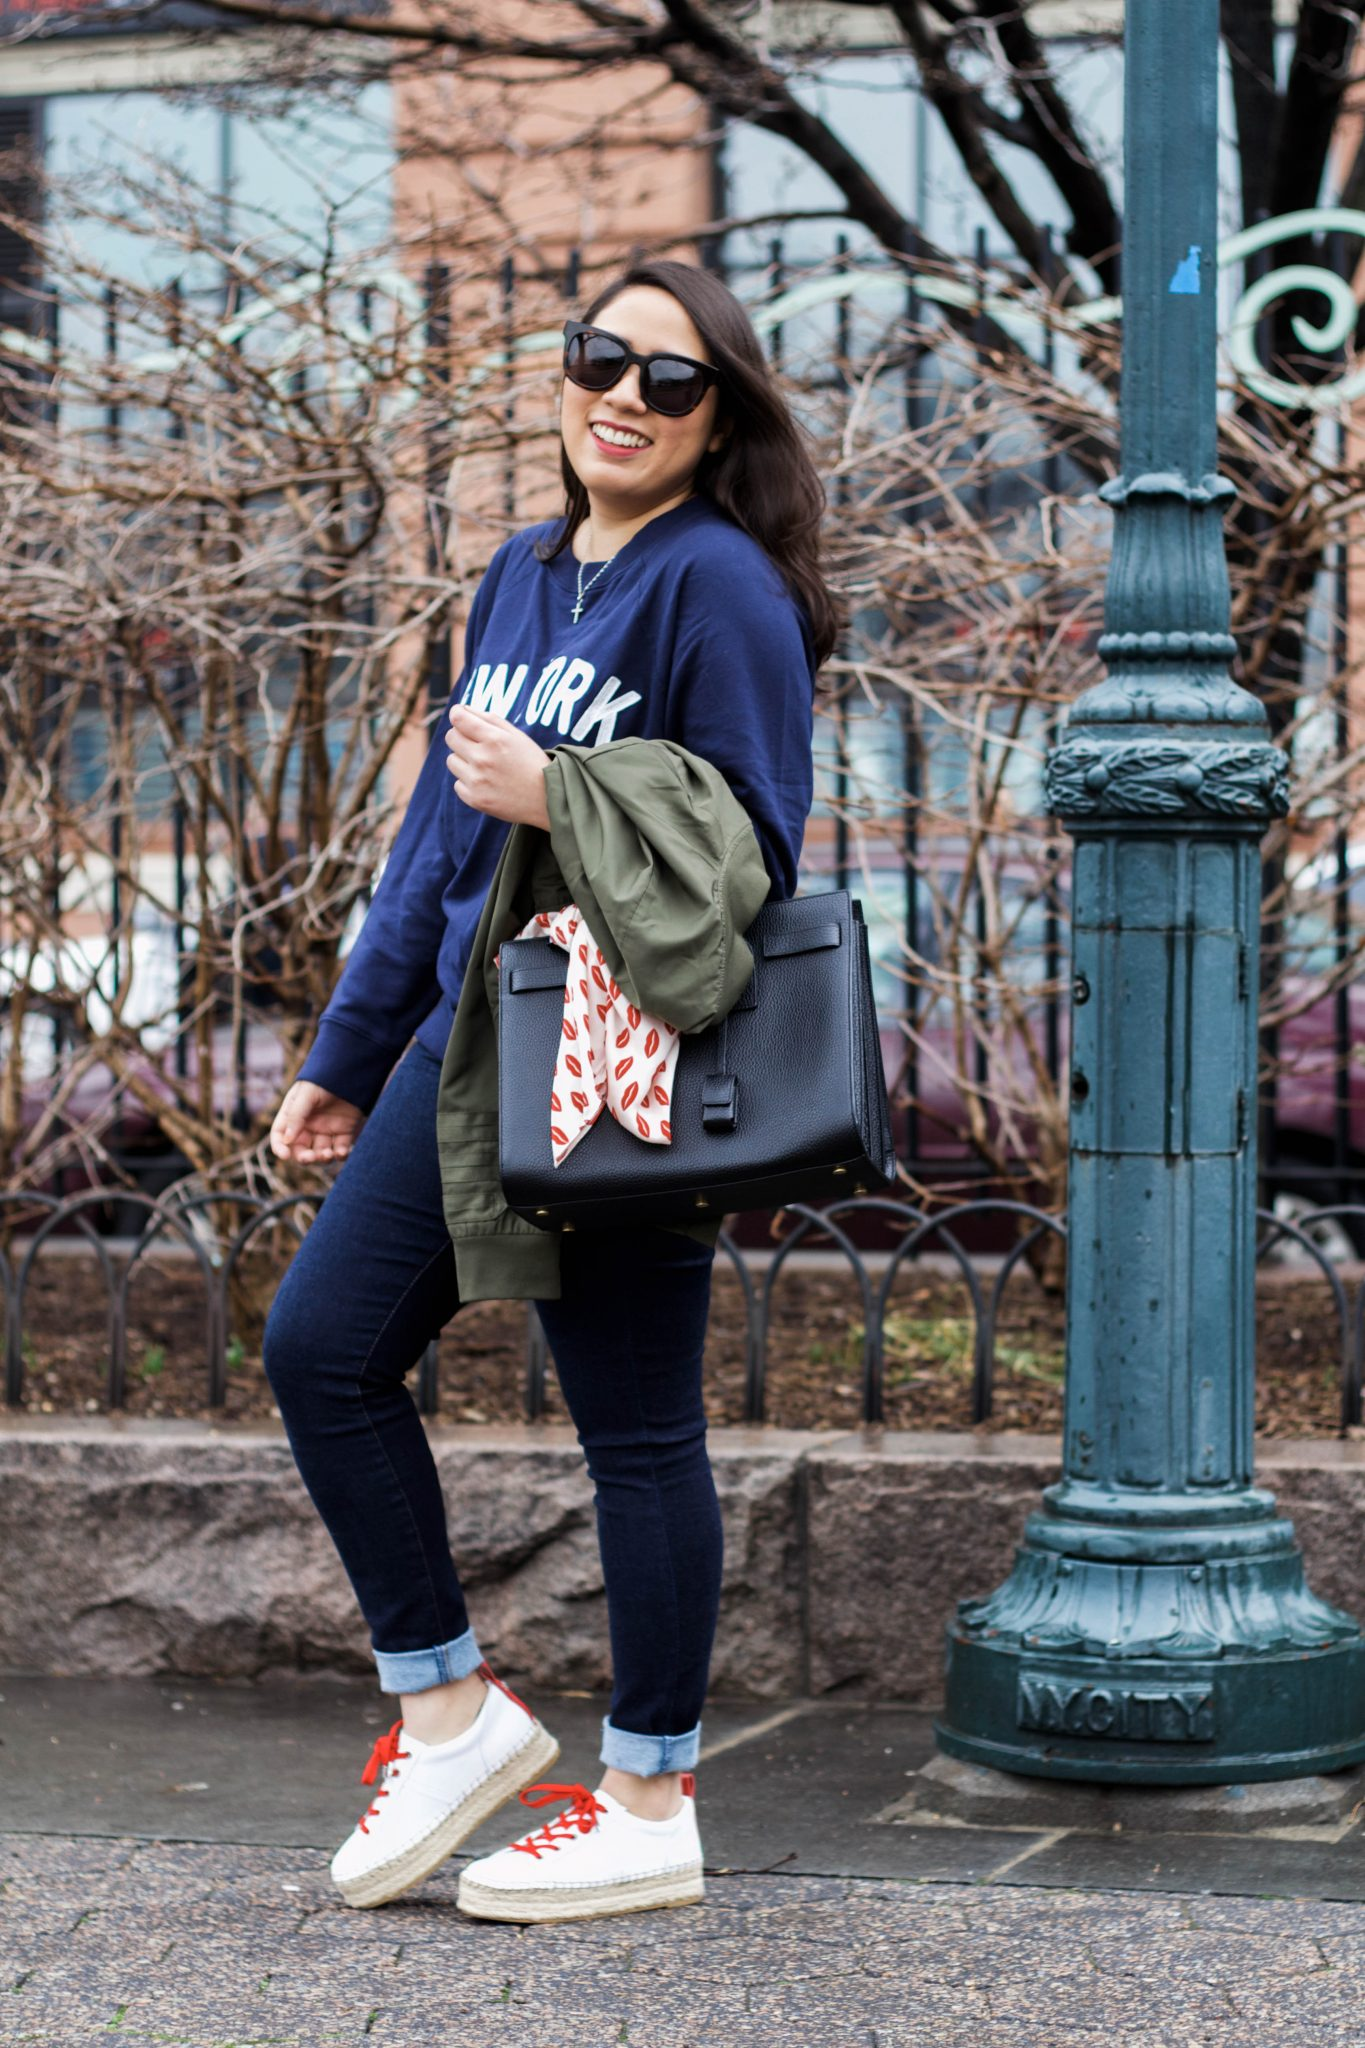 What It's Really Like Living In New York City by popular New York blogger Live Laugh LindaWhat It's Really Like Living In New York City by popular New York blogger Live Laugh Linda